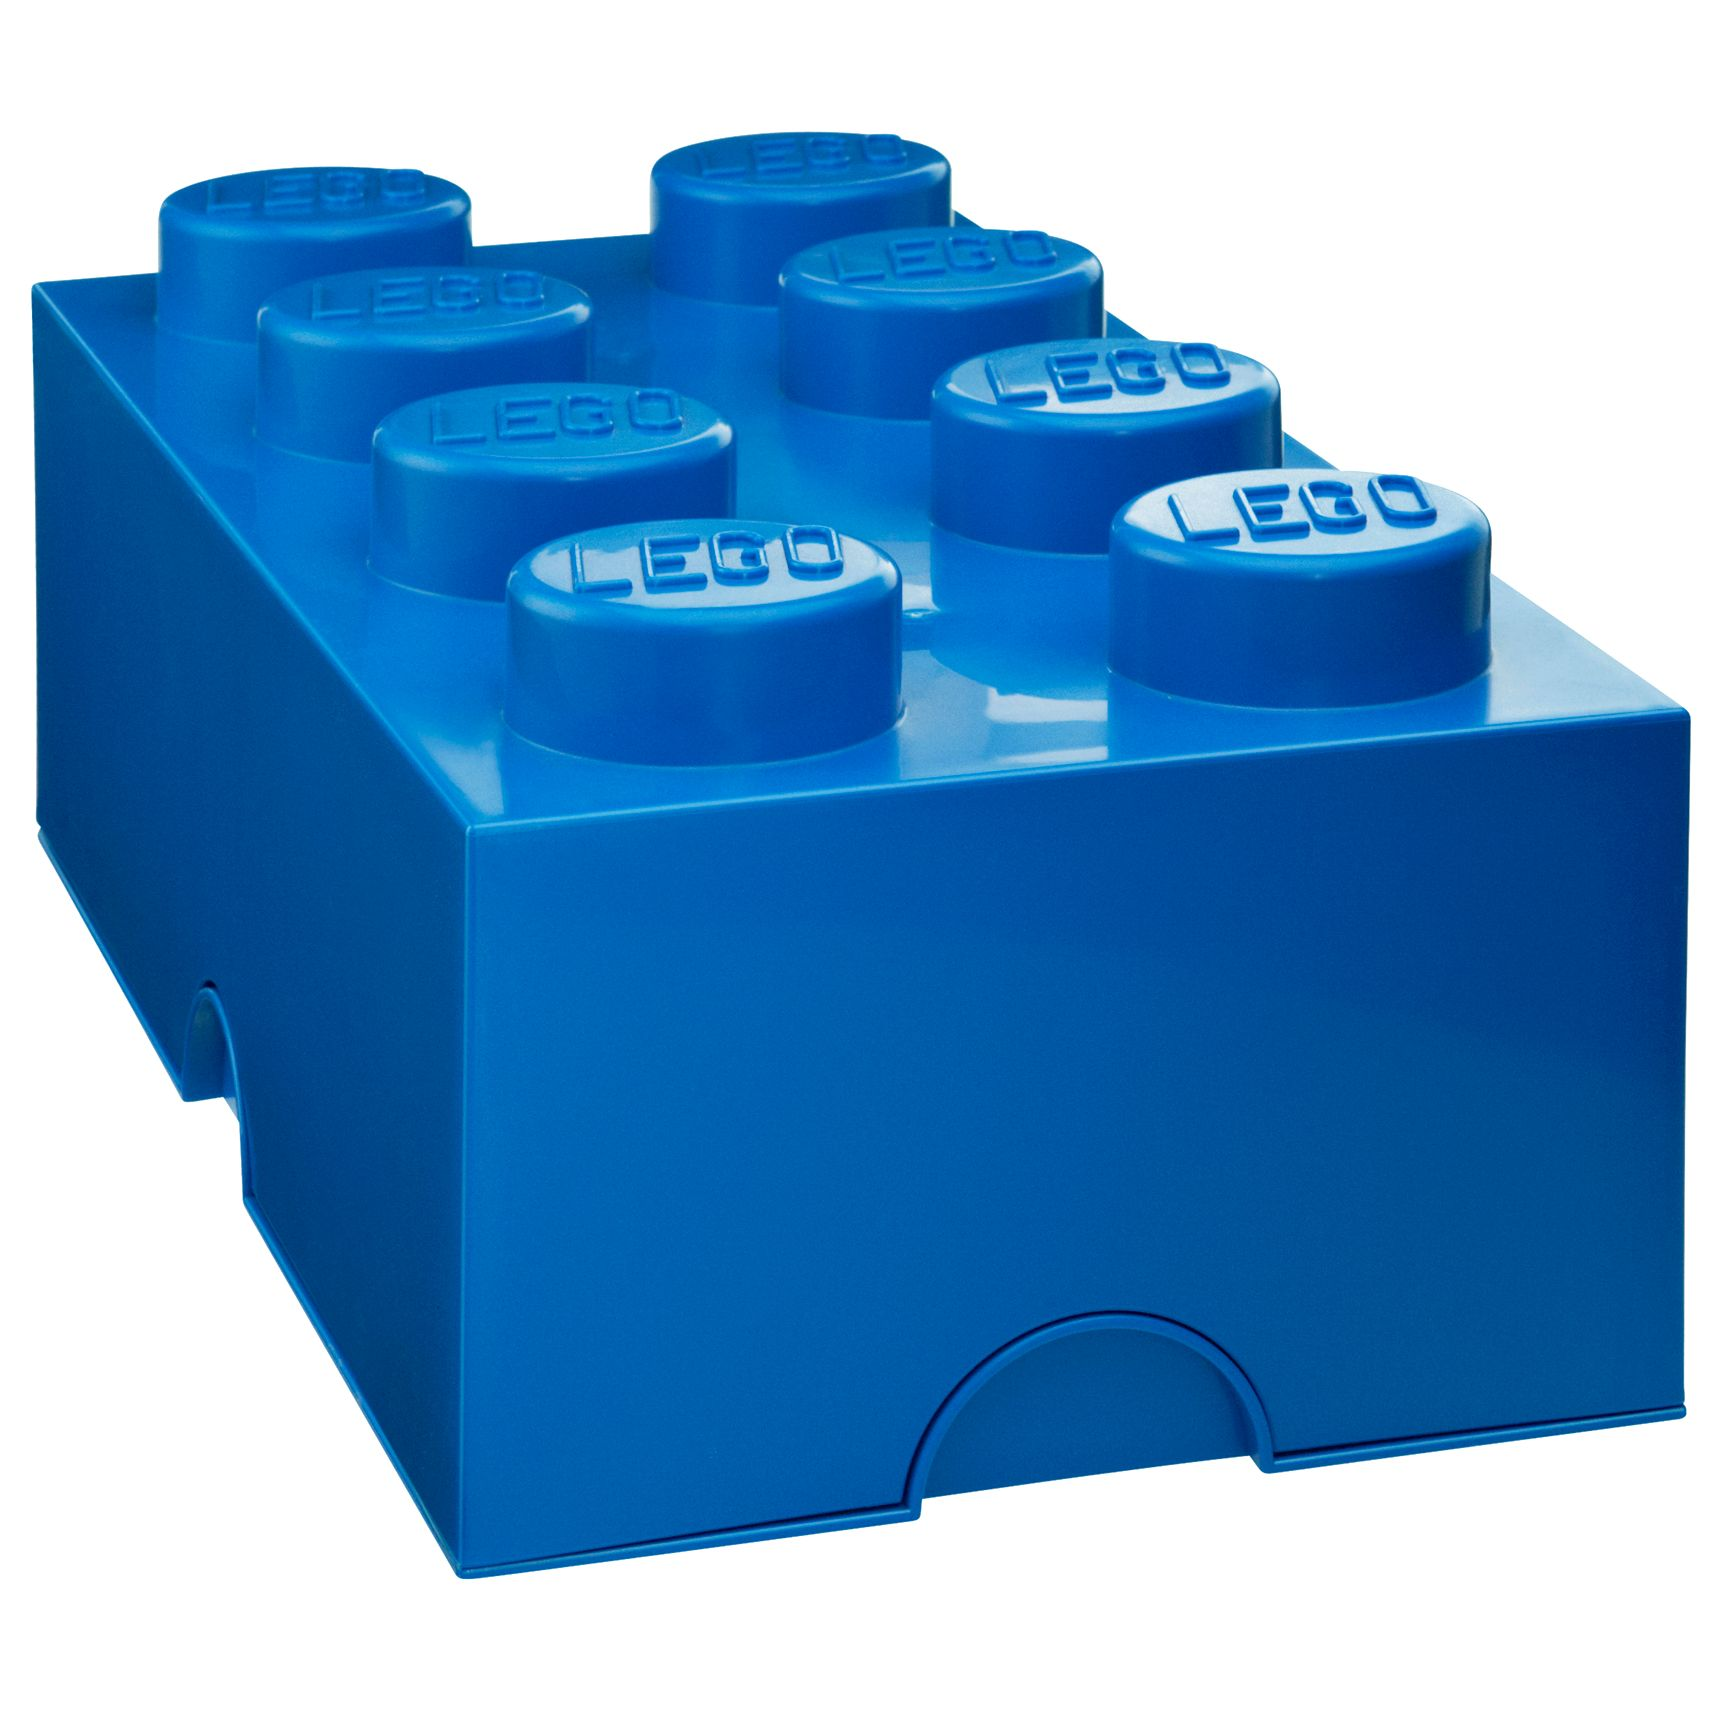 Lego 8 Stud Storage Brick, Blue